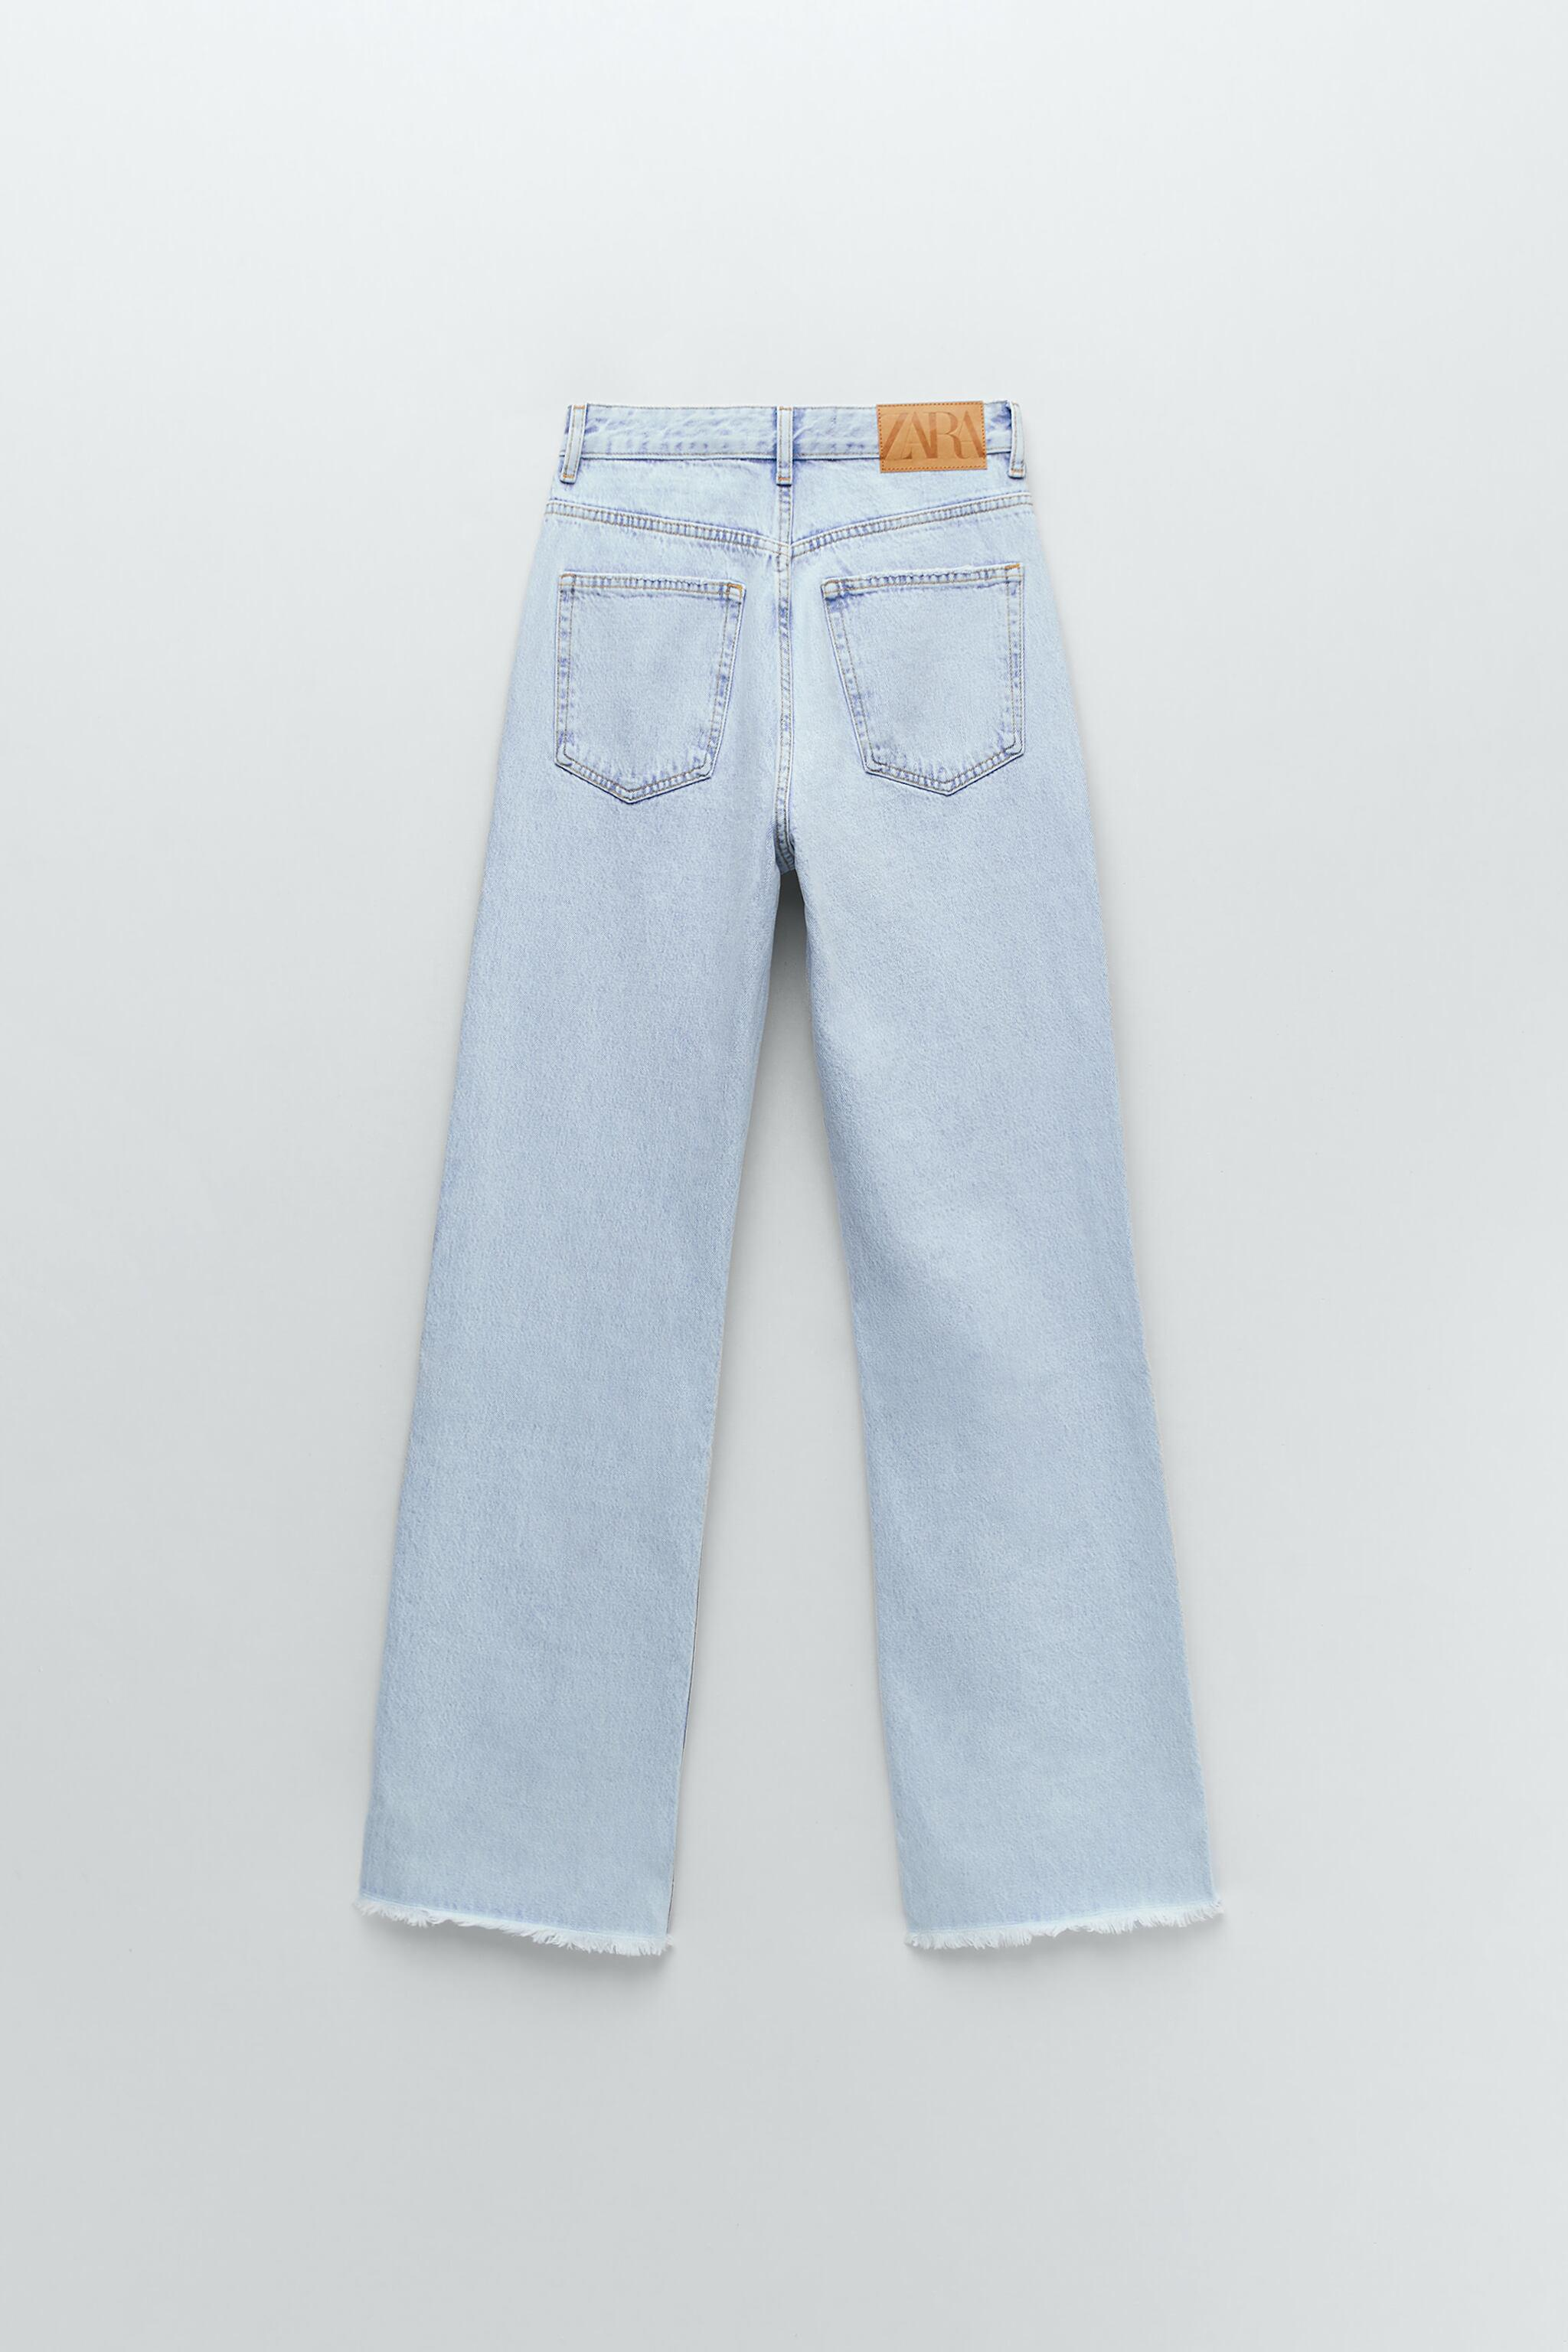 Z1975 HIGH RISE STRAIGHT JEANS 1